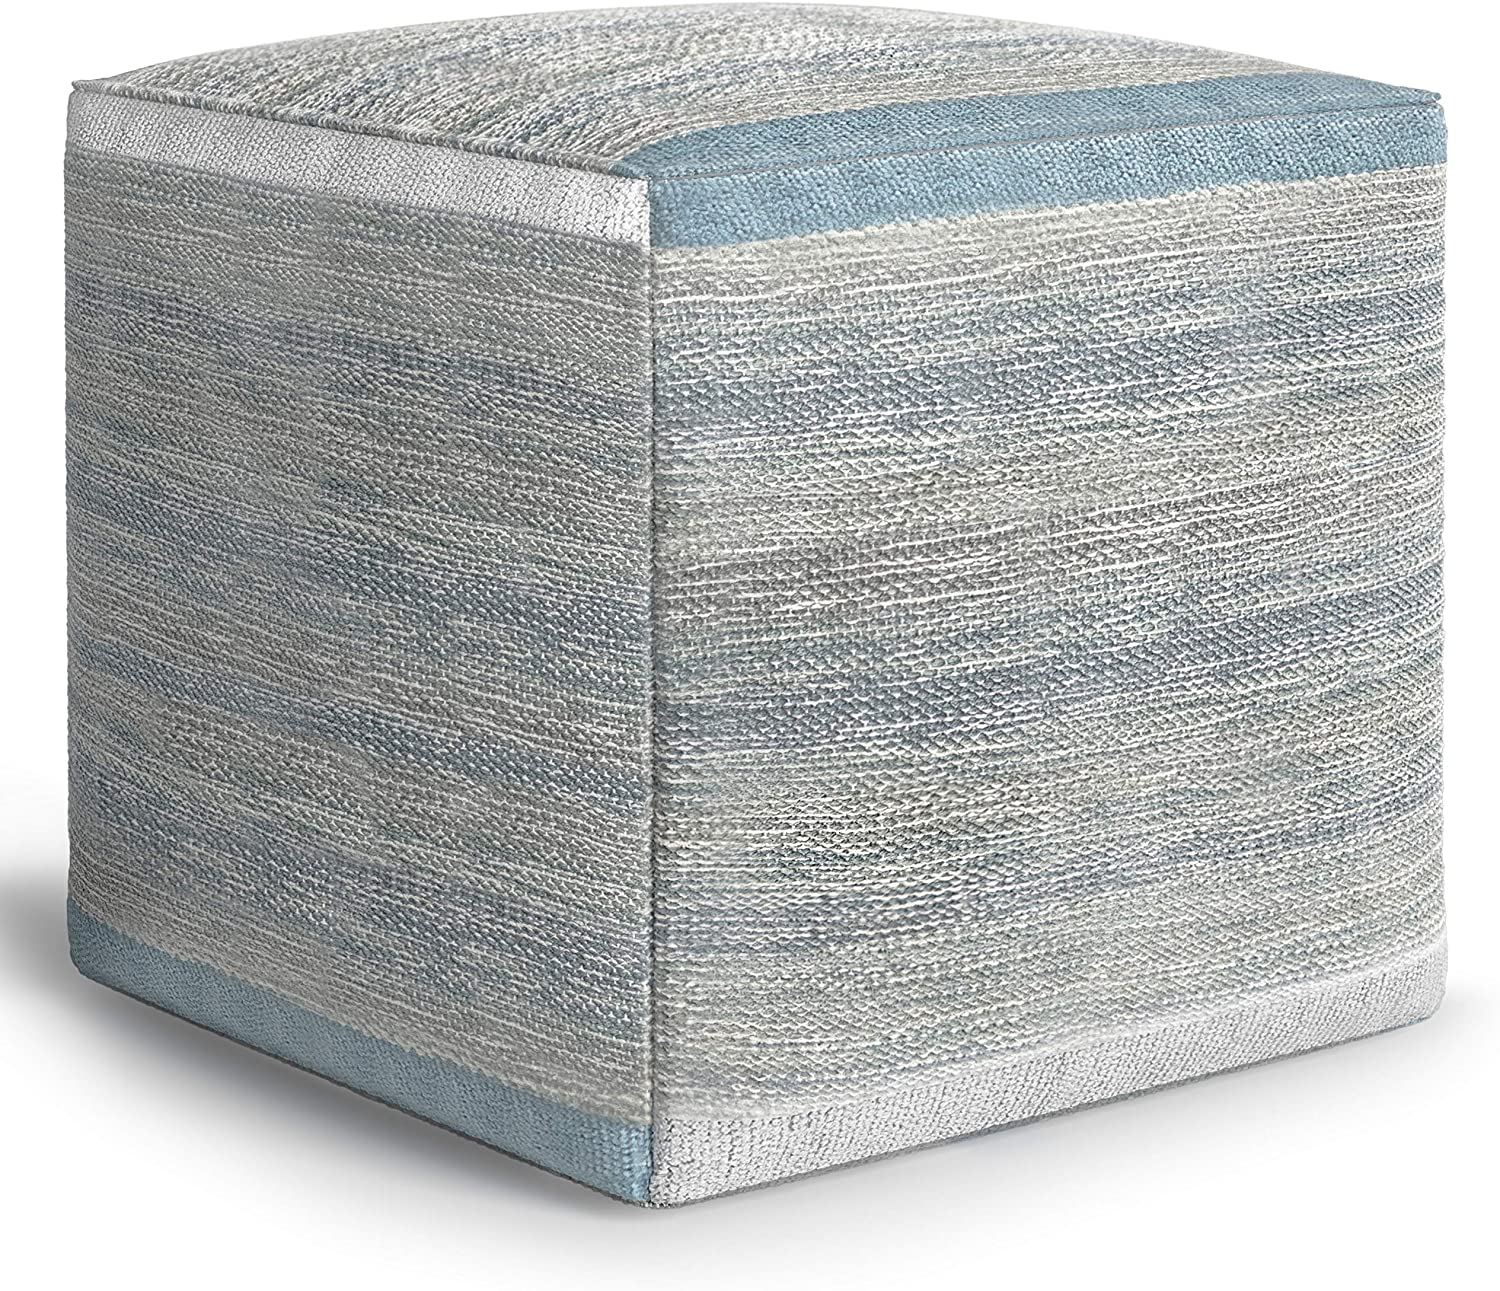 SIMPLIHOME Naya Cube Pouf, Footstool, Upholstered in Patterned Blue Melange and Woven Cotton, for the Living Room, Bedroom and Kids Room, Transitional, Modern